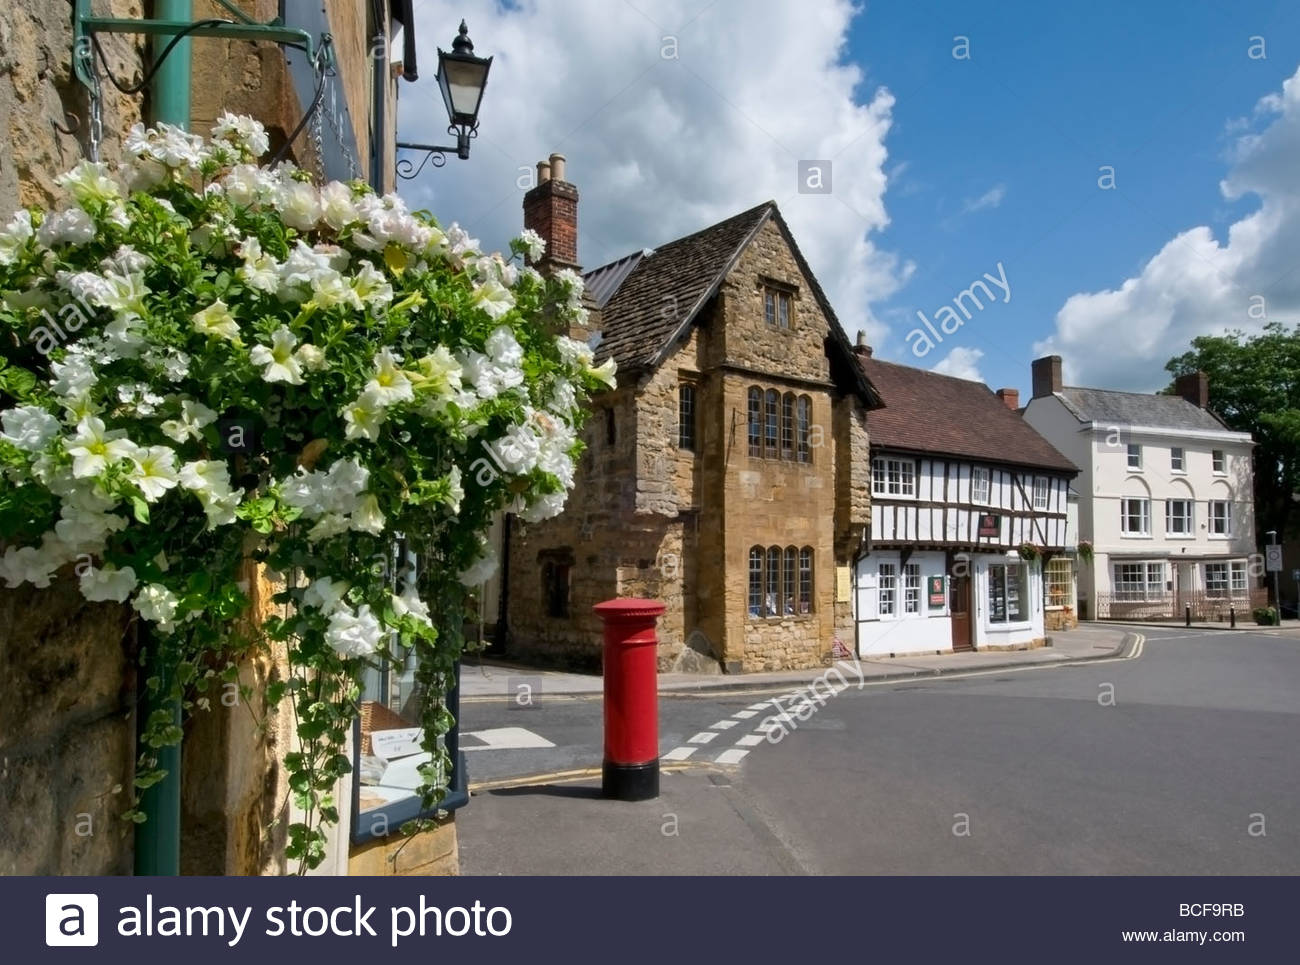 Sherborne historic town centre with hanging baskets of flowers and red post box Dorset  England UK - Stock Image